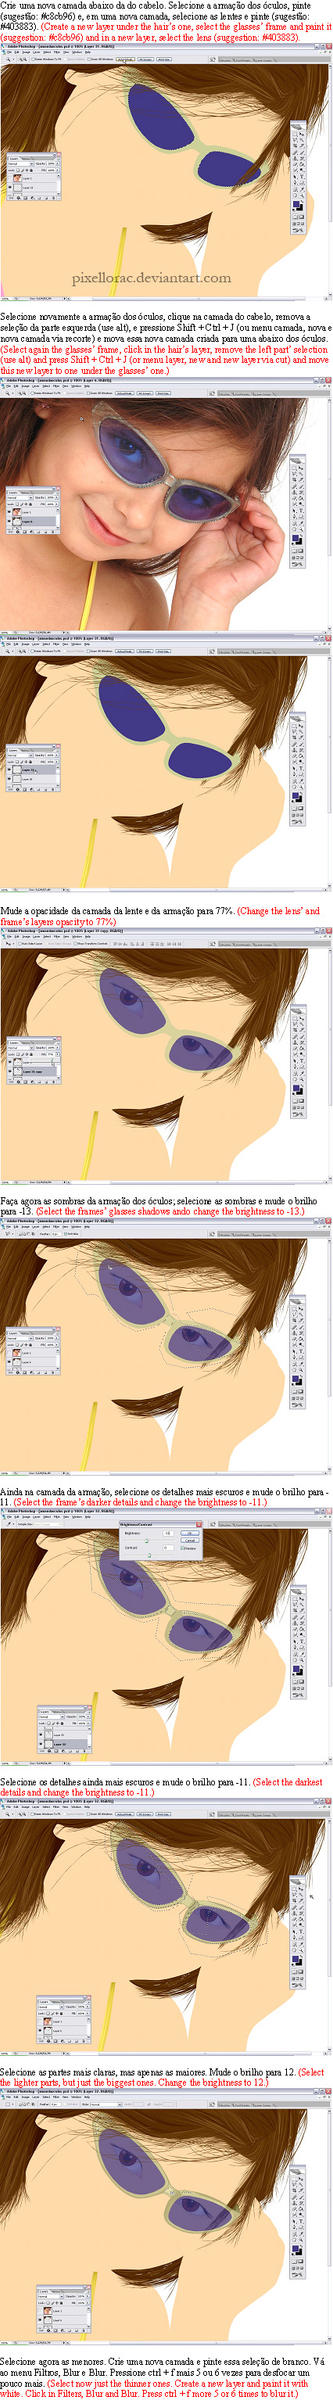 Vexel Tutorial PART IV.glasses by pixellorac